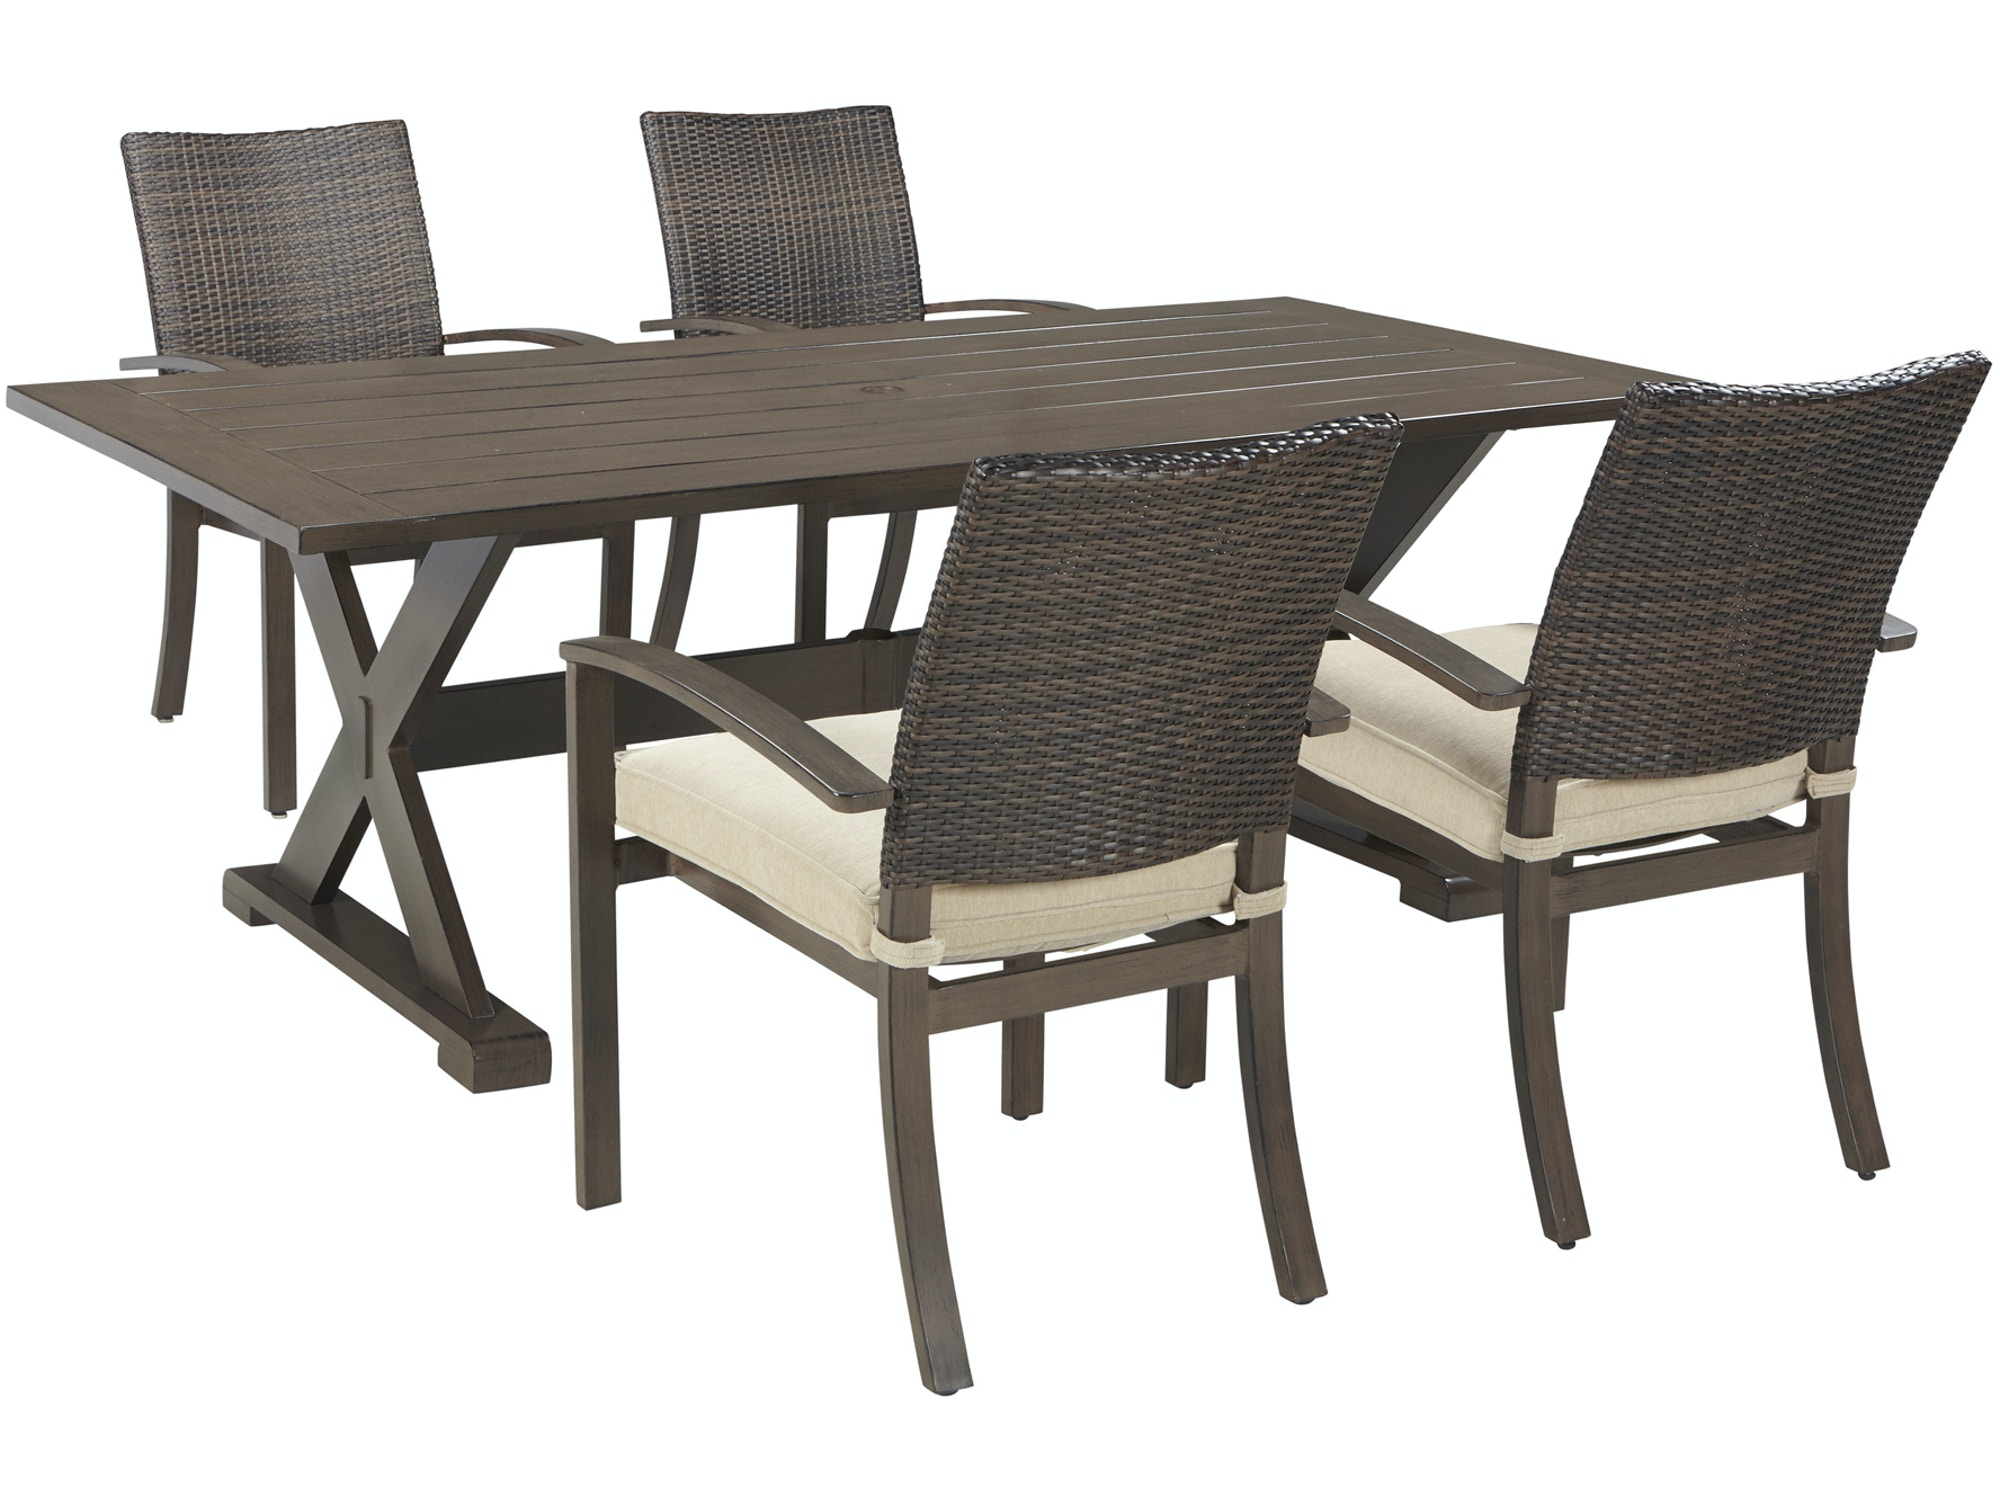 Moresdal Outdoor Dining Set 575980